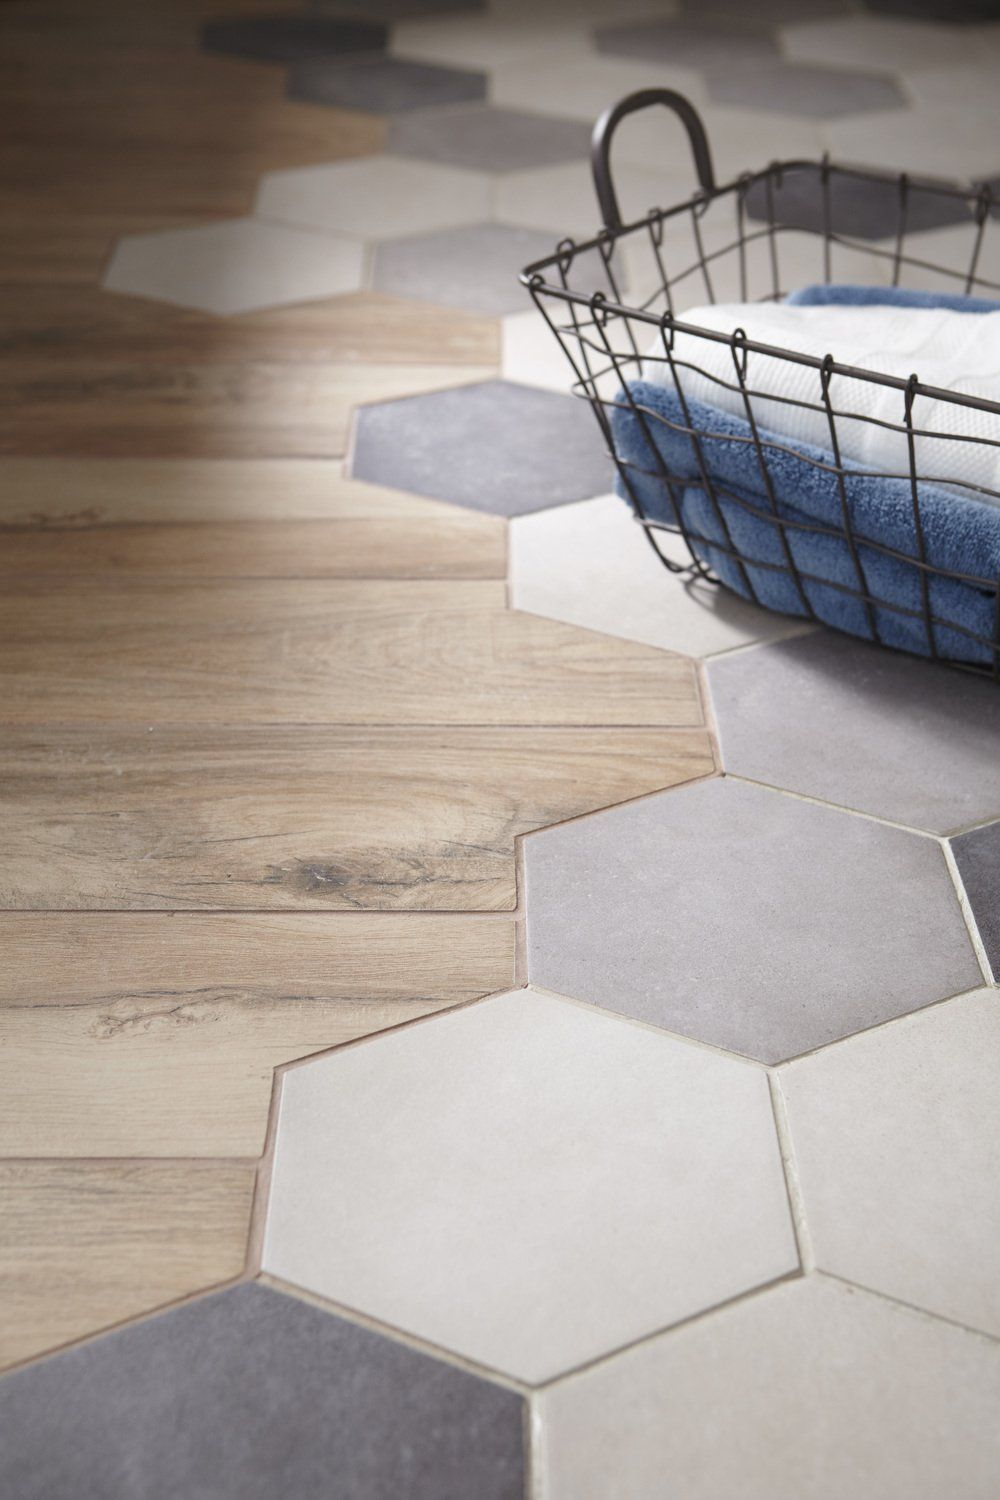 Eclectic Mix Of Floor Finishes Create A Visually Stunning Effect